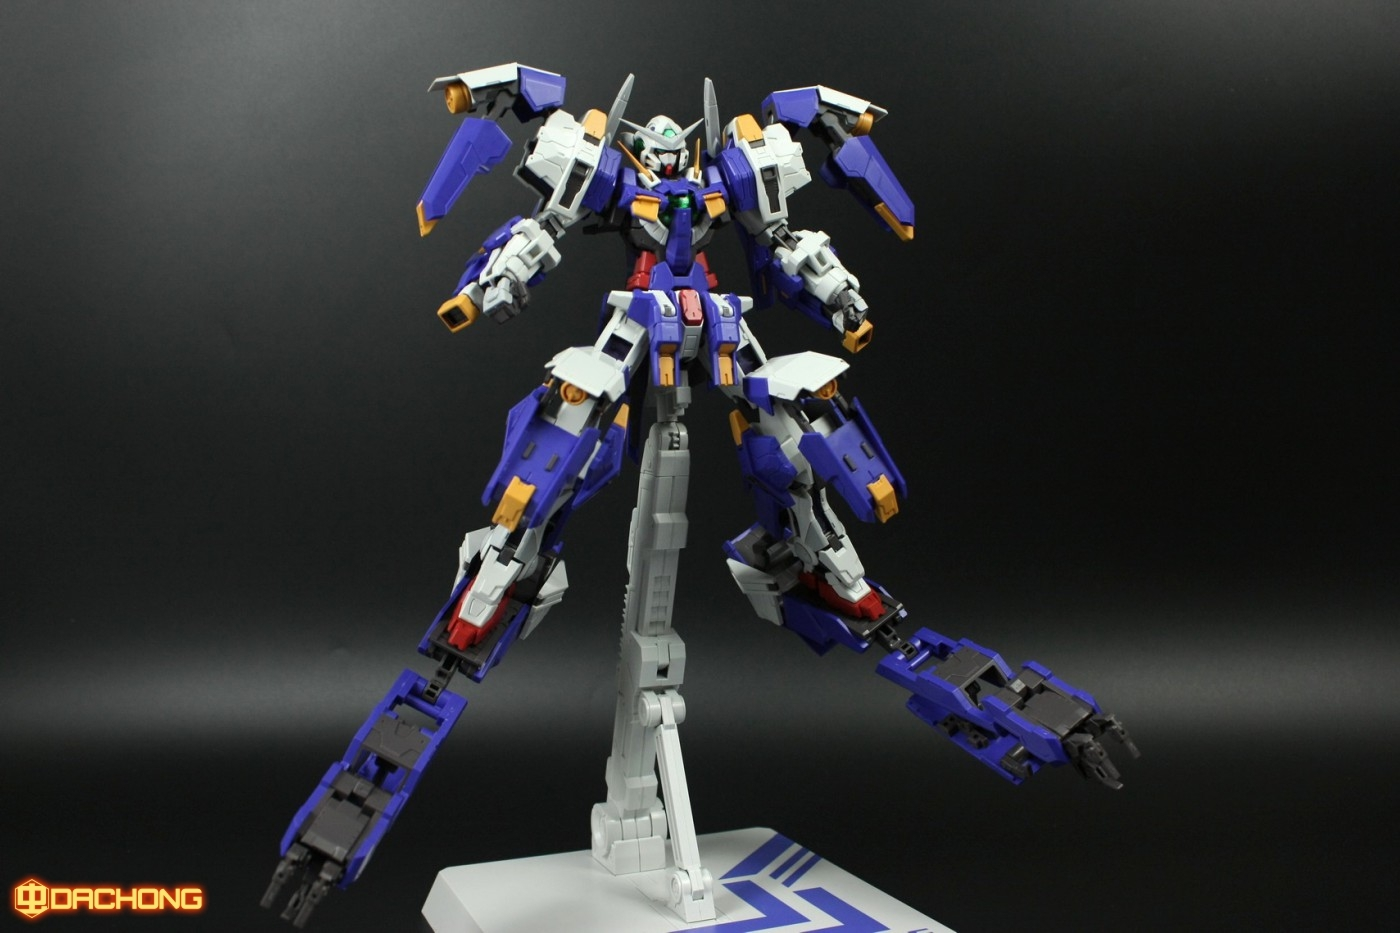 S254_MG_exia_HS_review_inask_090.jpg